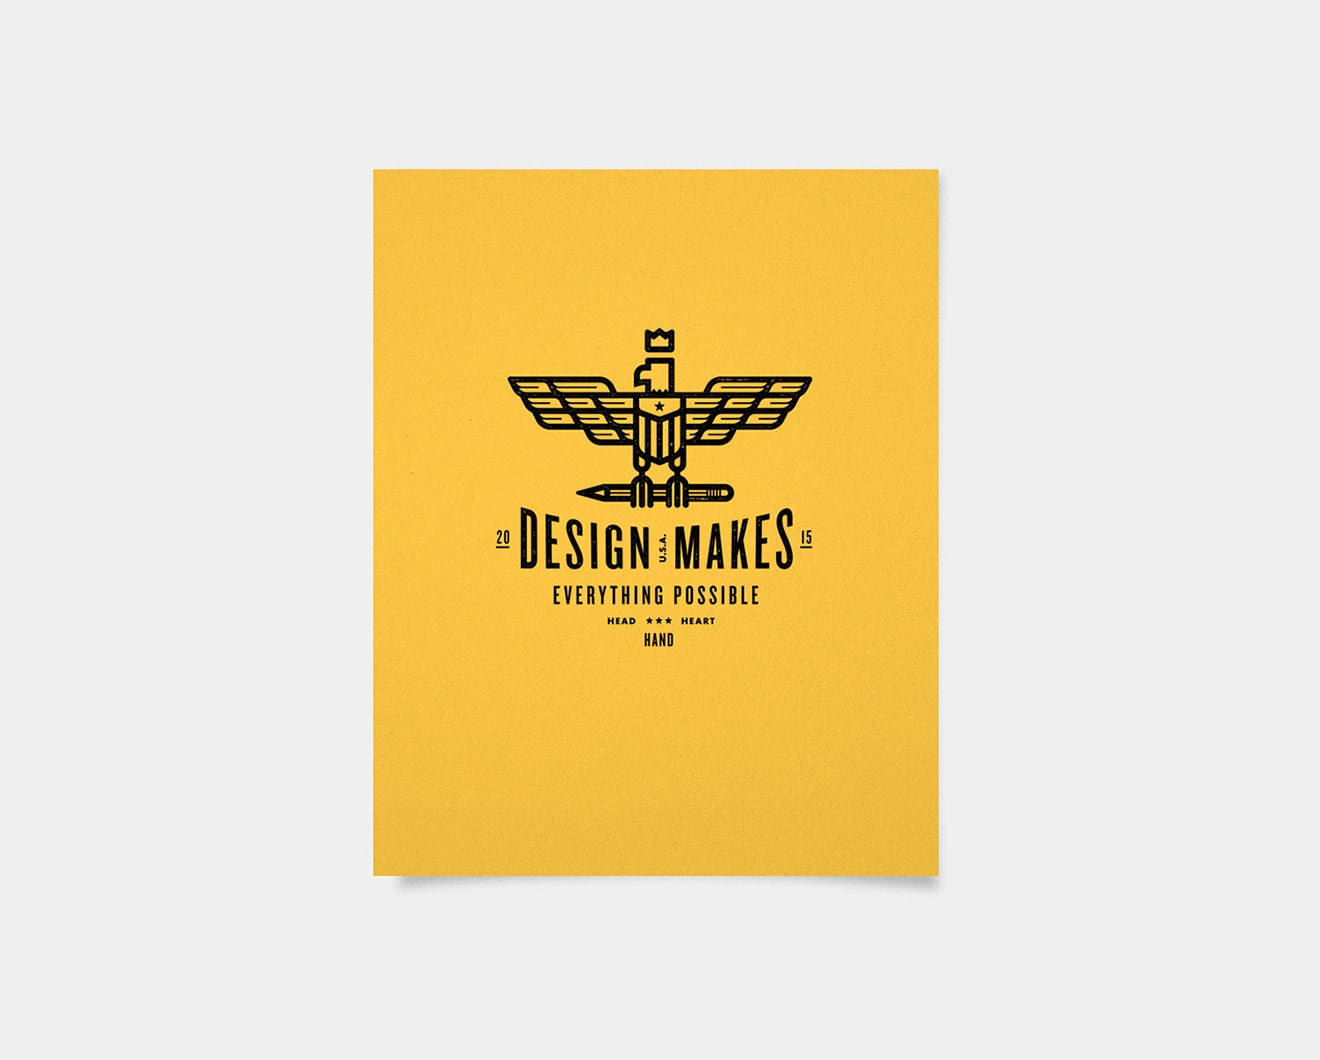 Design Makes Everything Possible - Allan Peters